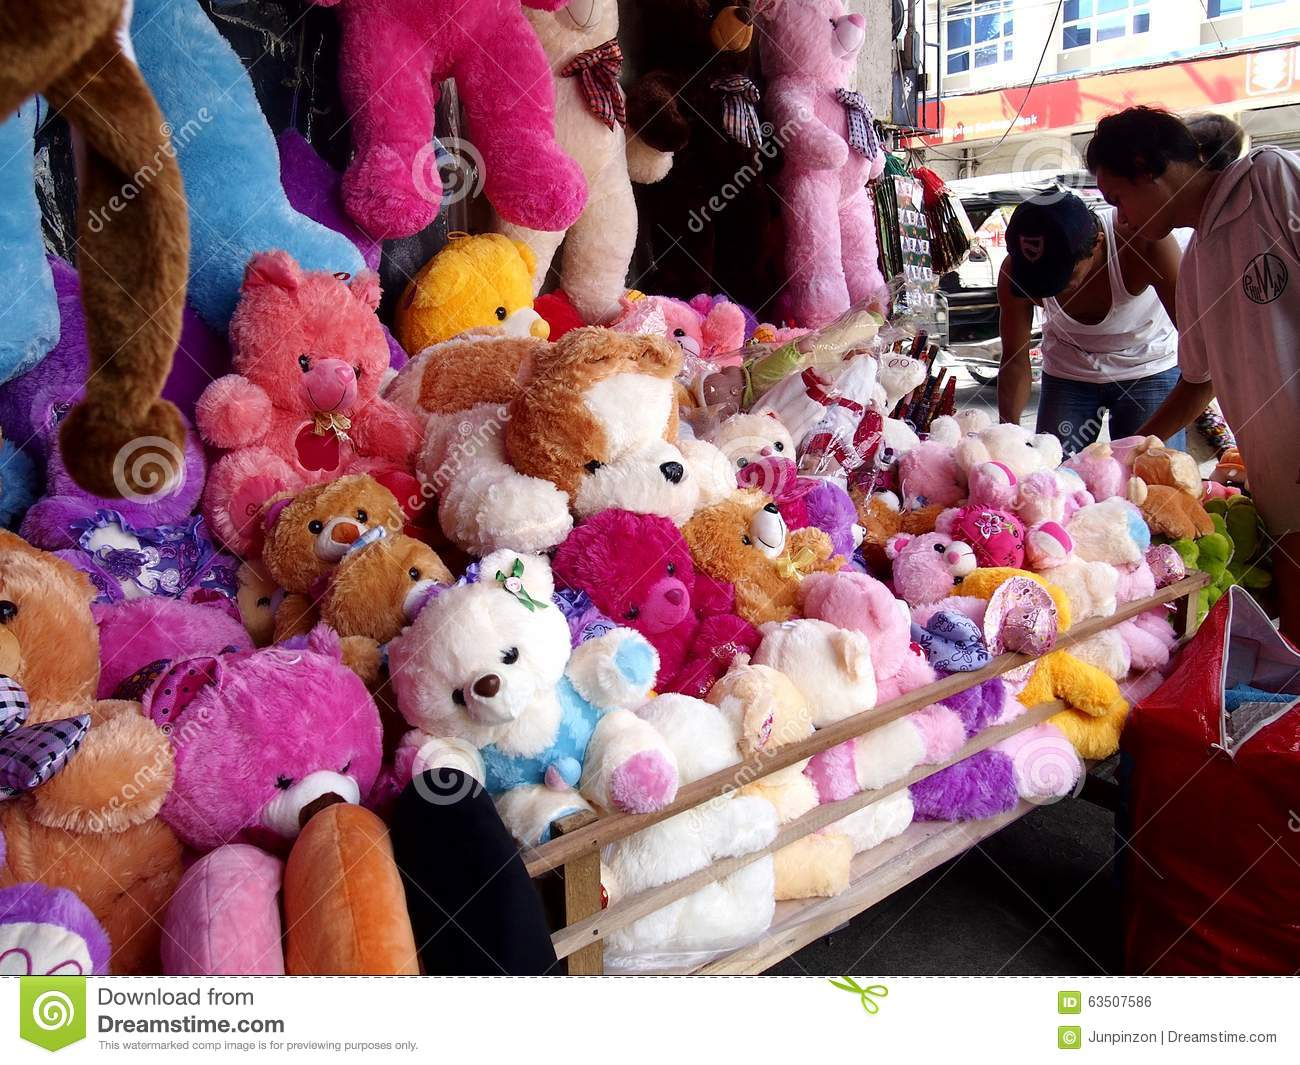 A wide variety stuffed toy animals on display